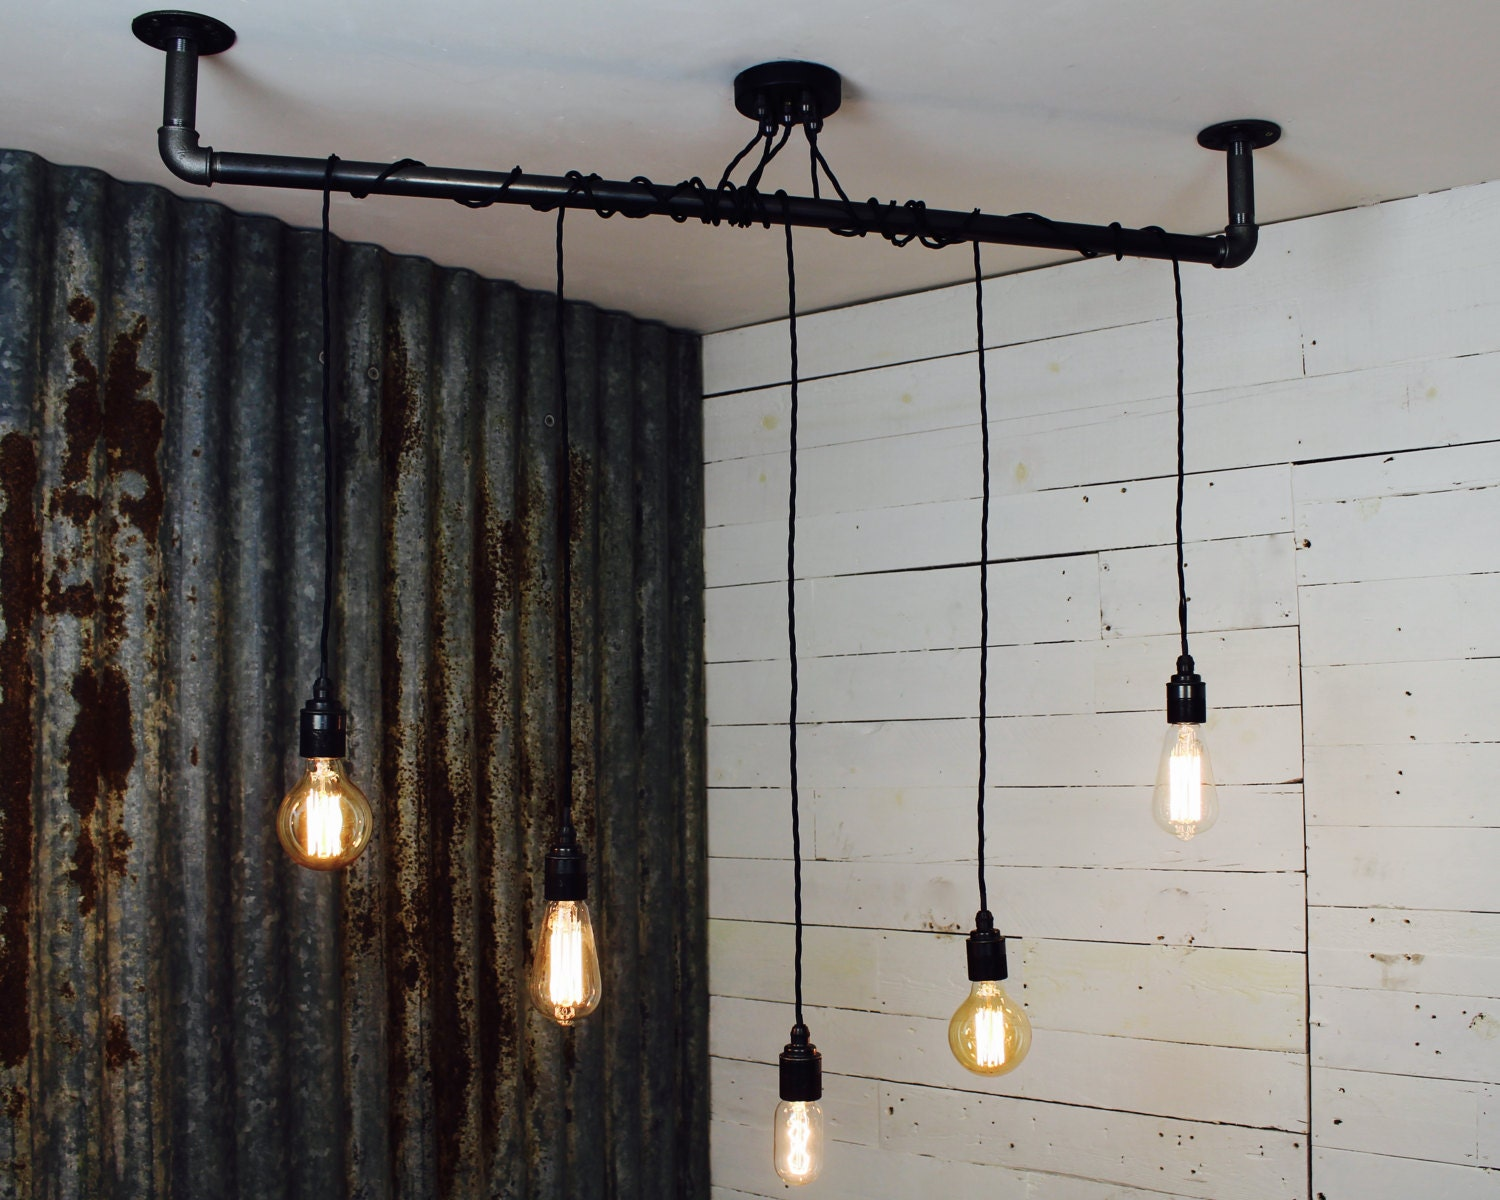 industrial light fittings metal tube handmade drop bar pendant light with fittings for e27 edison screw bulbs industrial light happisburgh